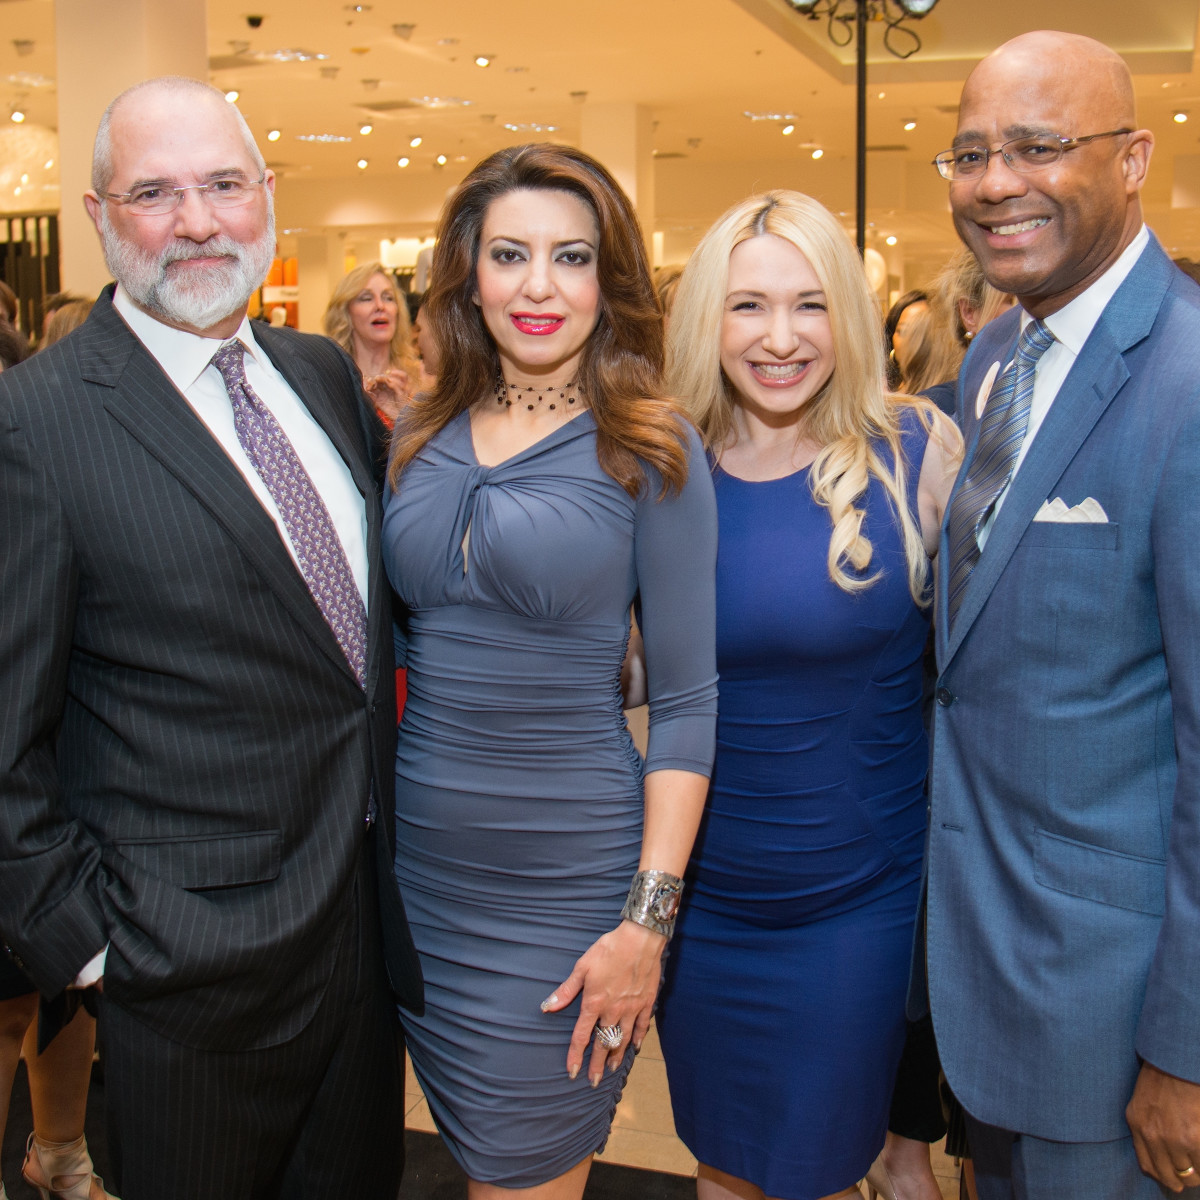 Bob Cavnar, Parissa Mohajer, Anna Kaplan, Michael Pearson at Dress for Dinner